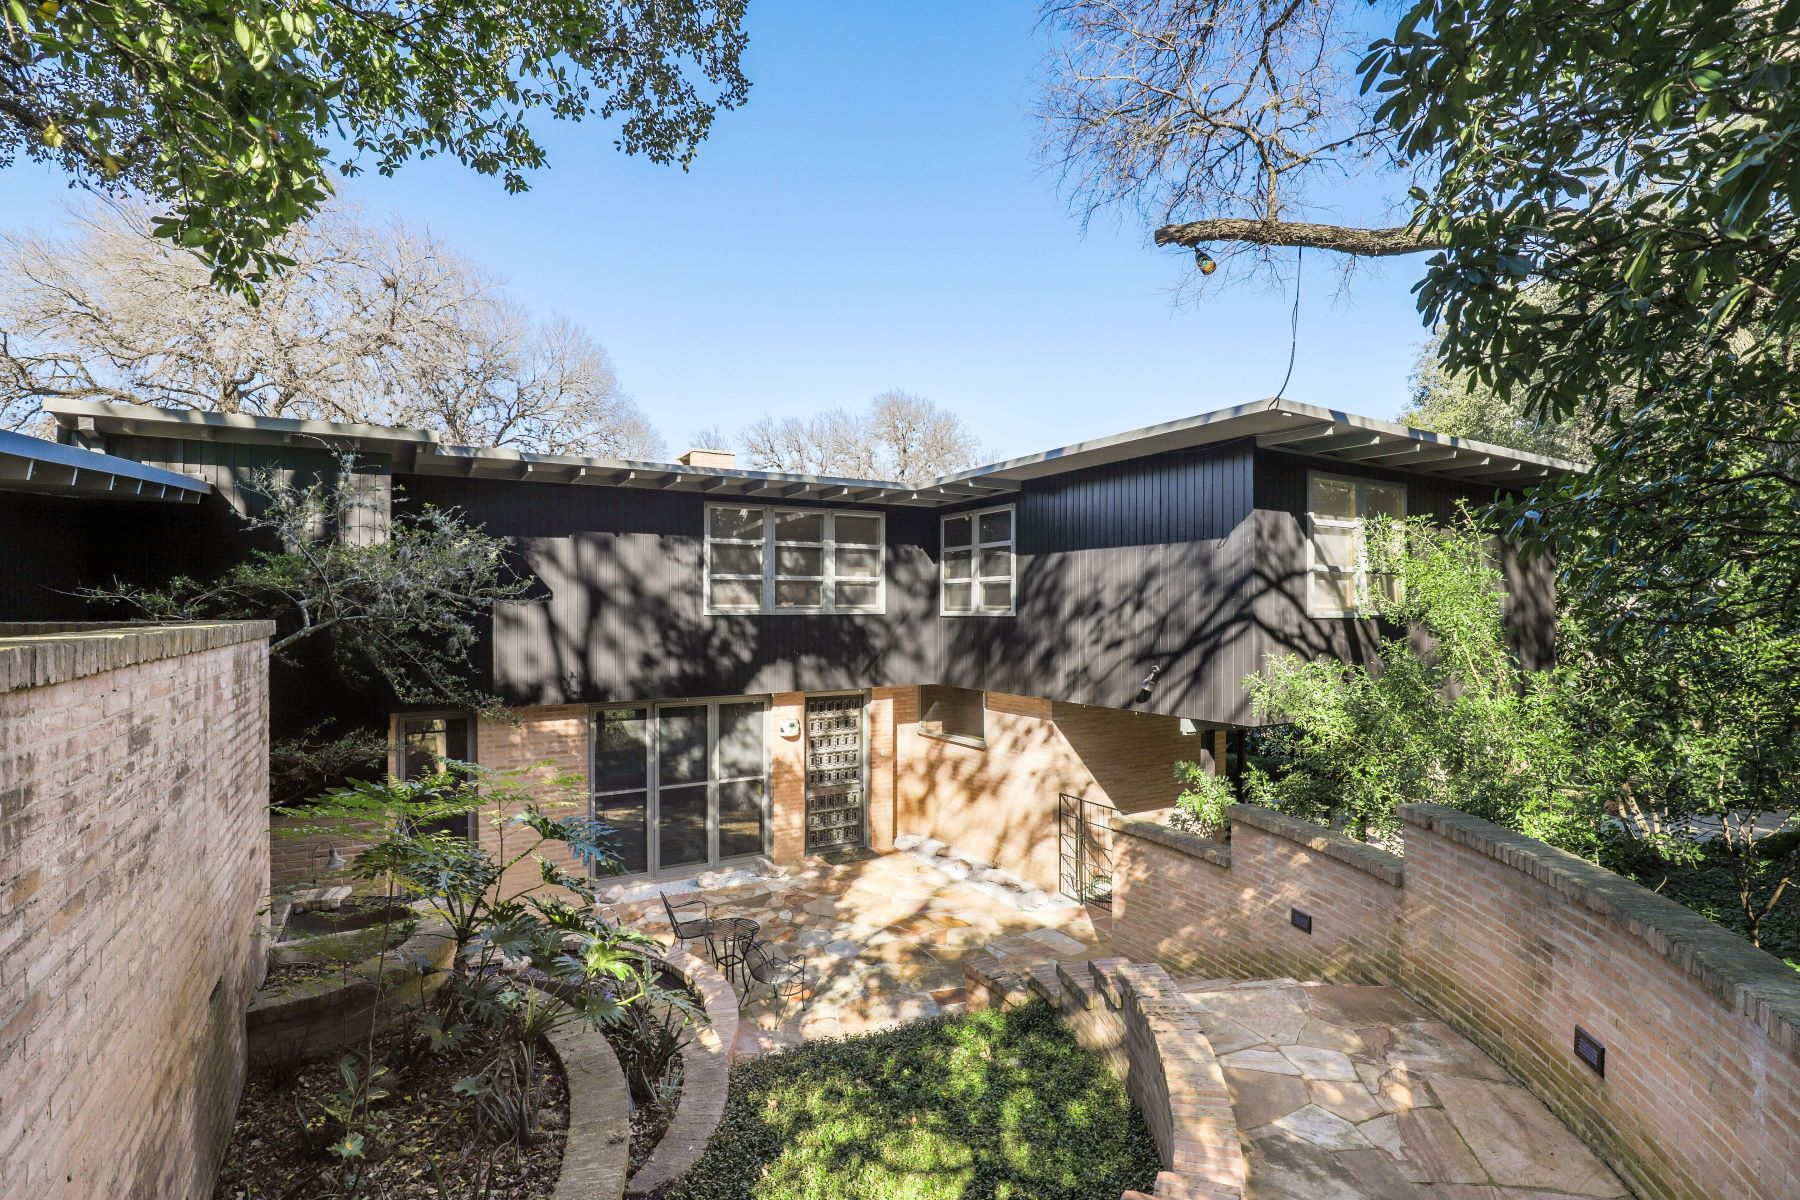 Single Family Homes for Sale at Stunning Gem in Olmos Park 150 Mount Erin Pass San Antonio, Texas 78212 United States